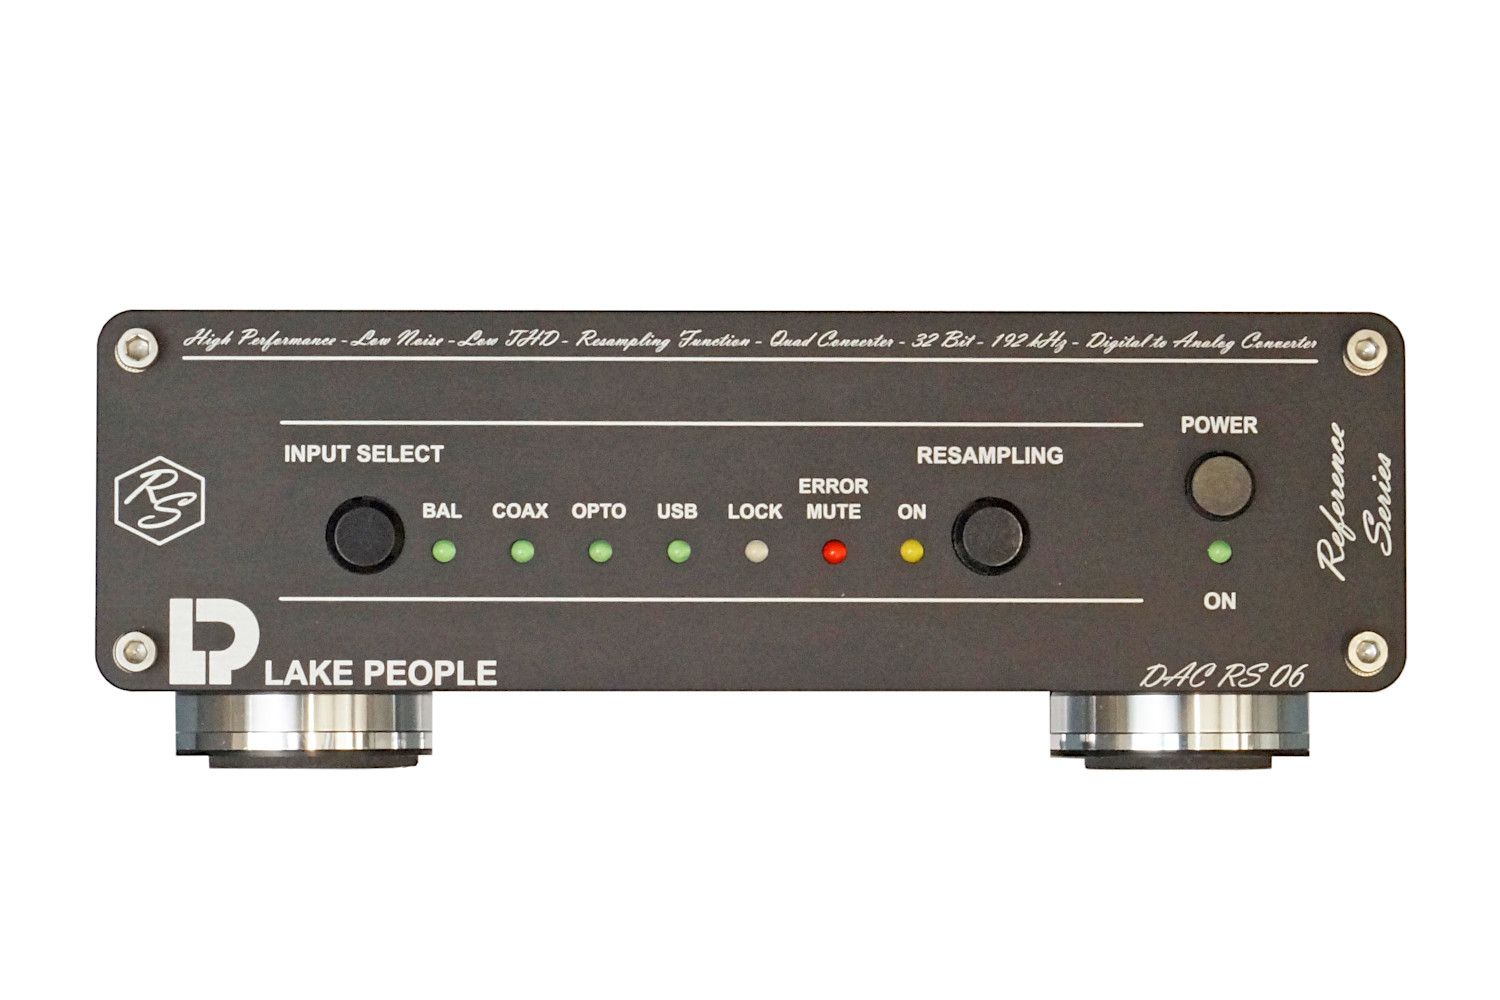 Lake People DAC RS 06 Digital Audio Converter